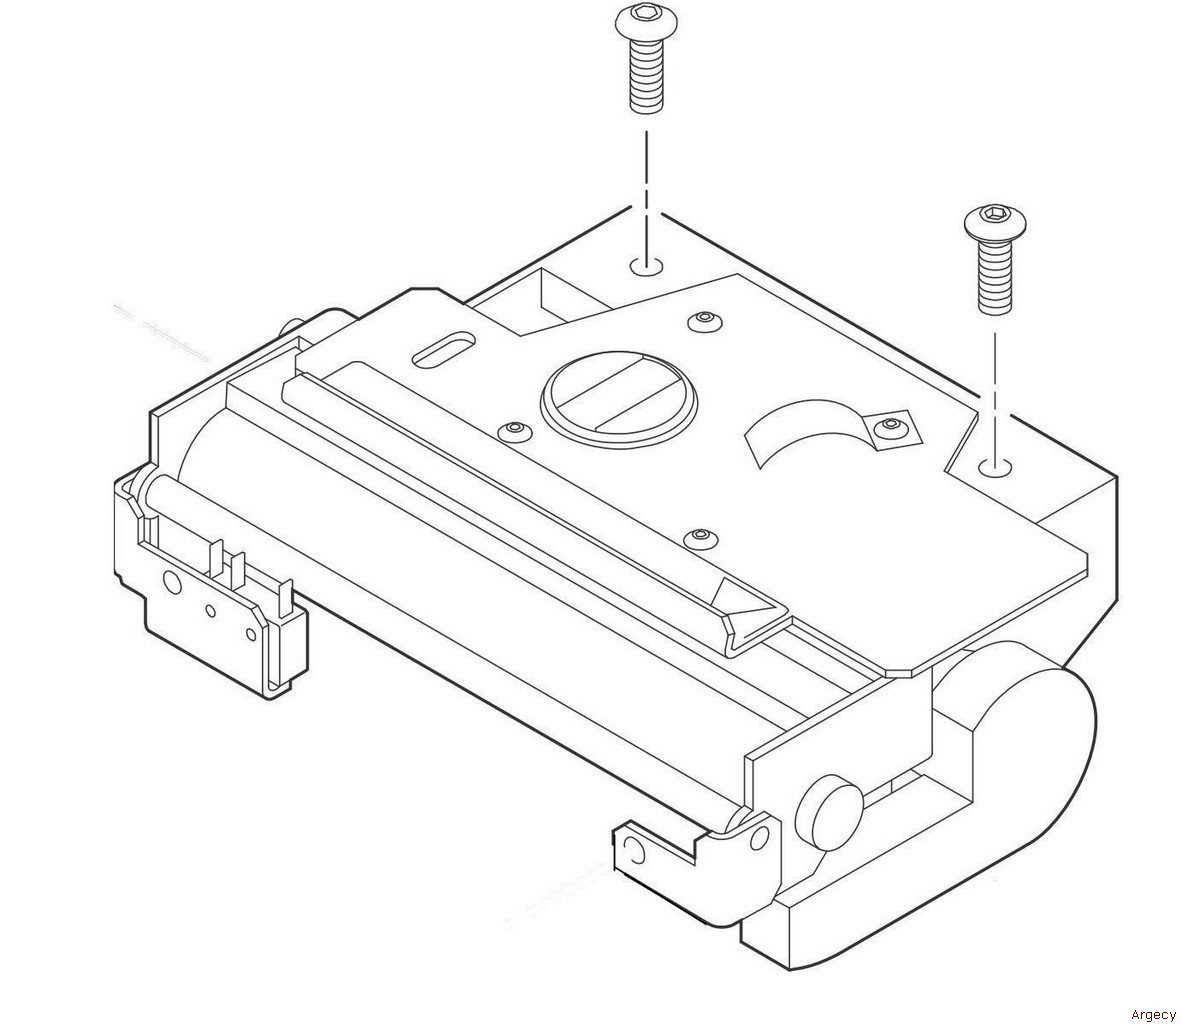 Printronix 258615-003 (New) - purchase from Argecy